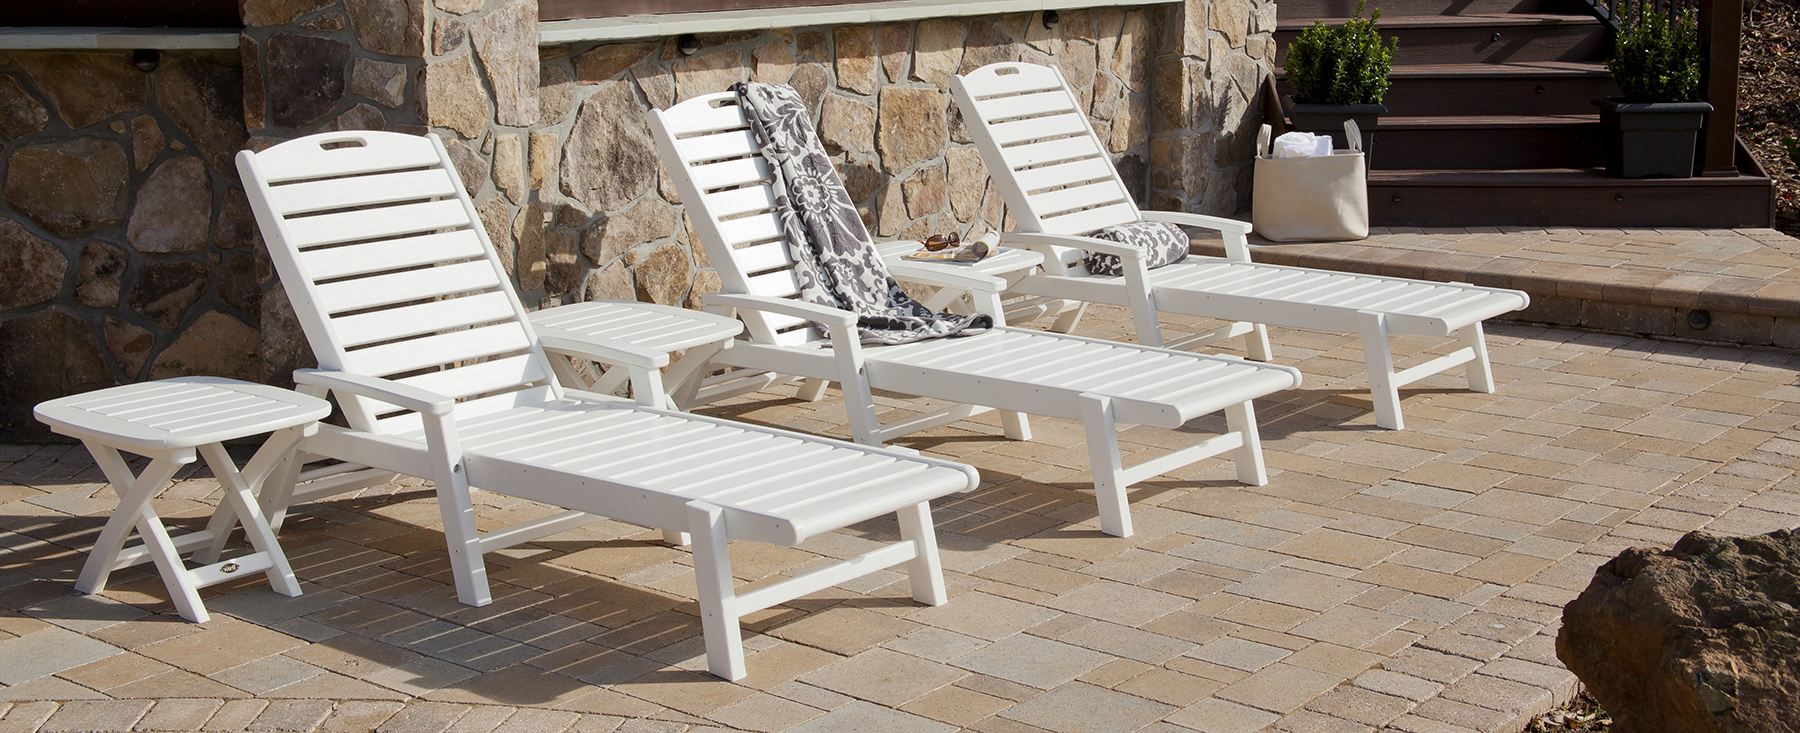 Curved Folding Chaise Loungers With Most Current The Shopper's Guide To Buying An Outdoor Chaise Lounge (View 6 of 25)